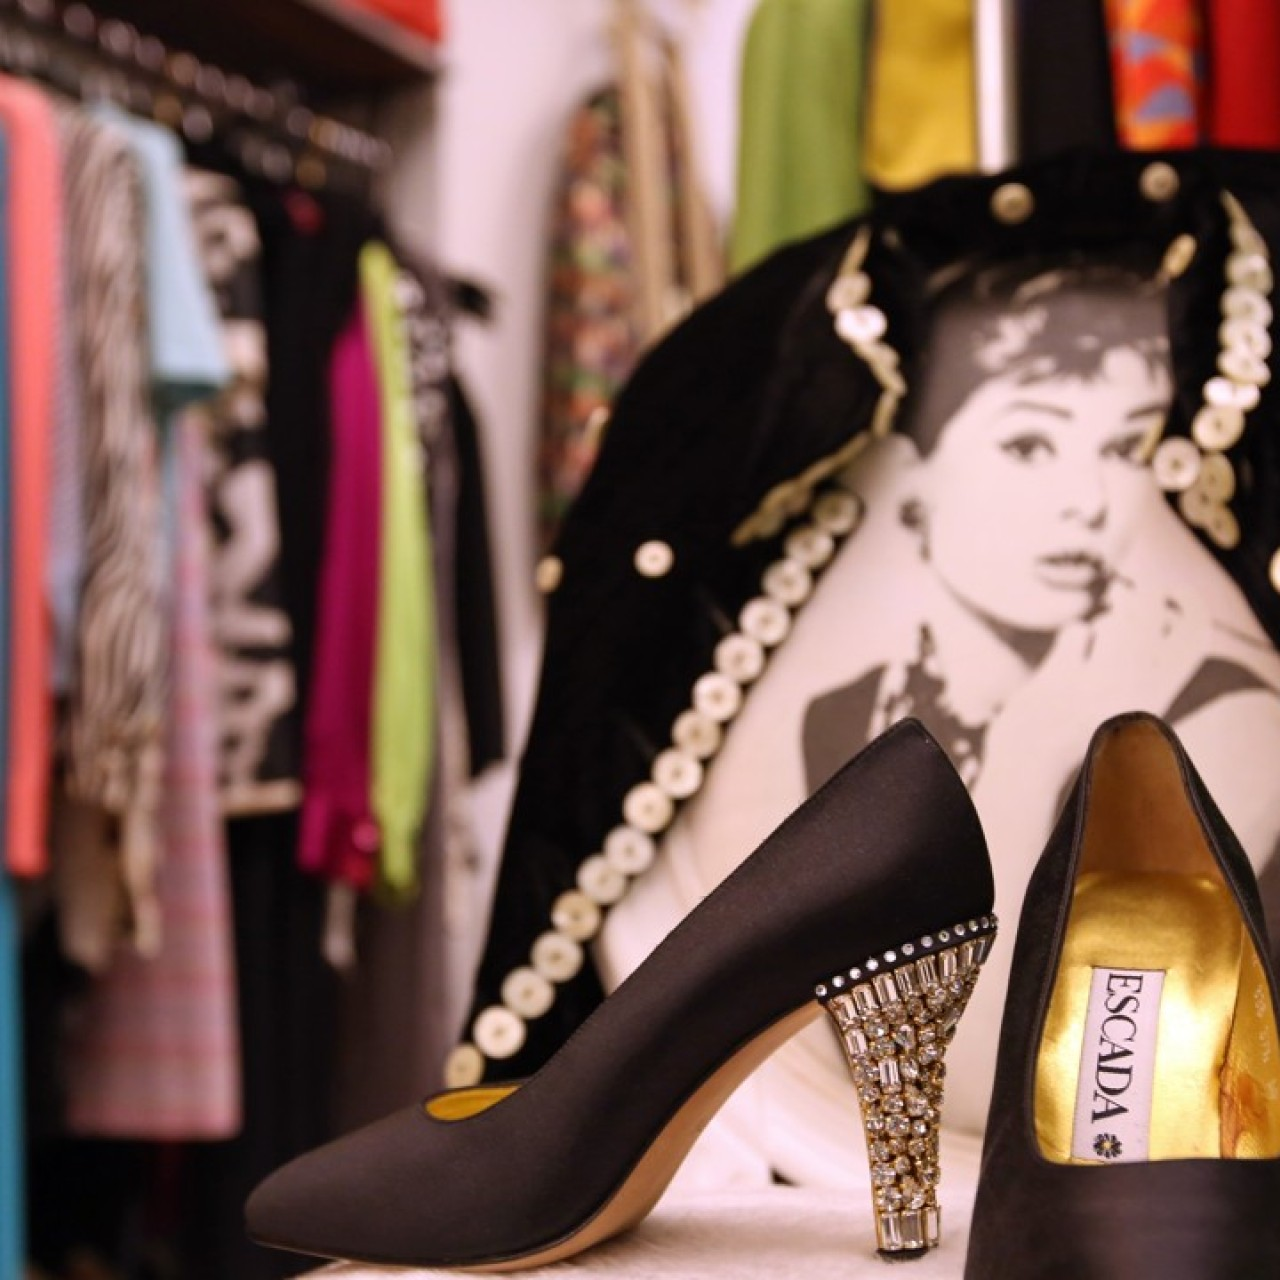 7a62da76d2a2f Five of the best vintage shops for that retro look in Hong Kong ...